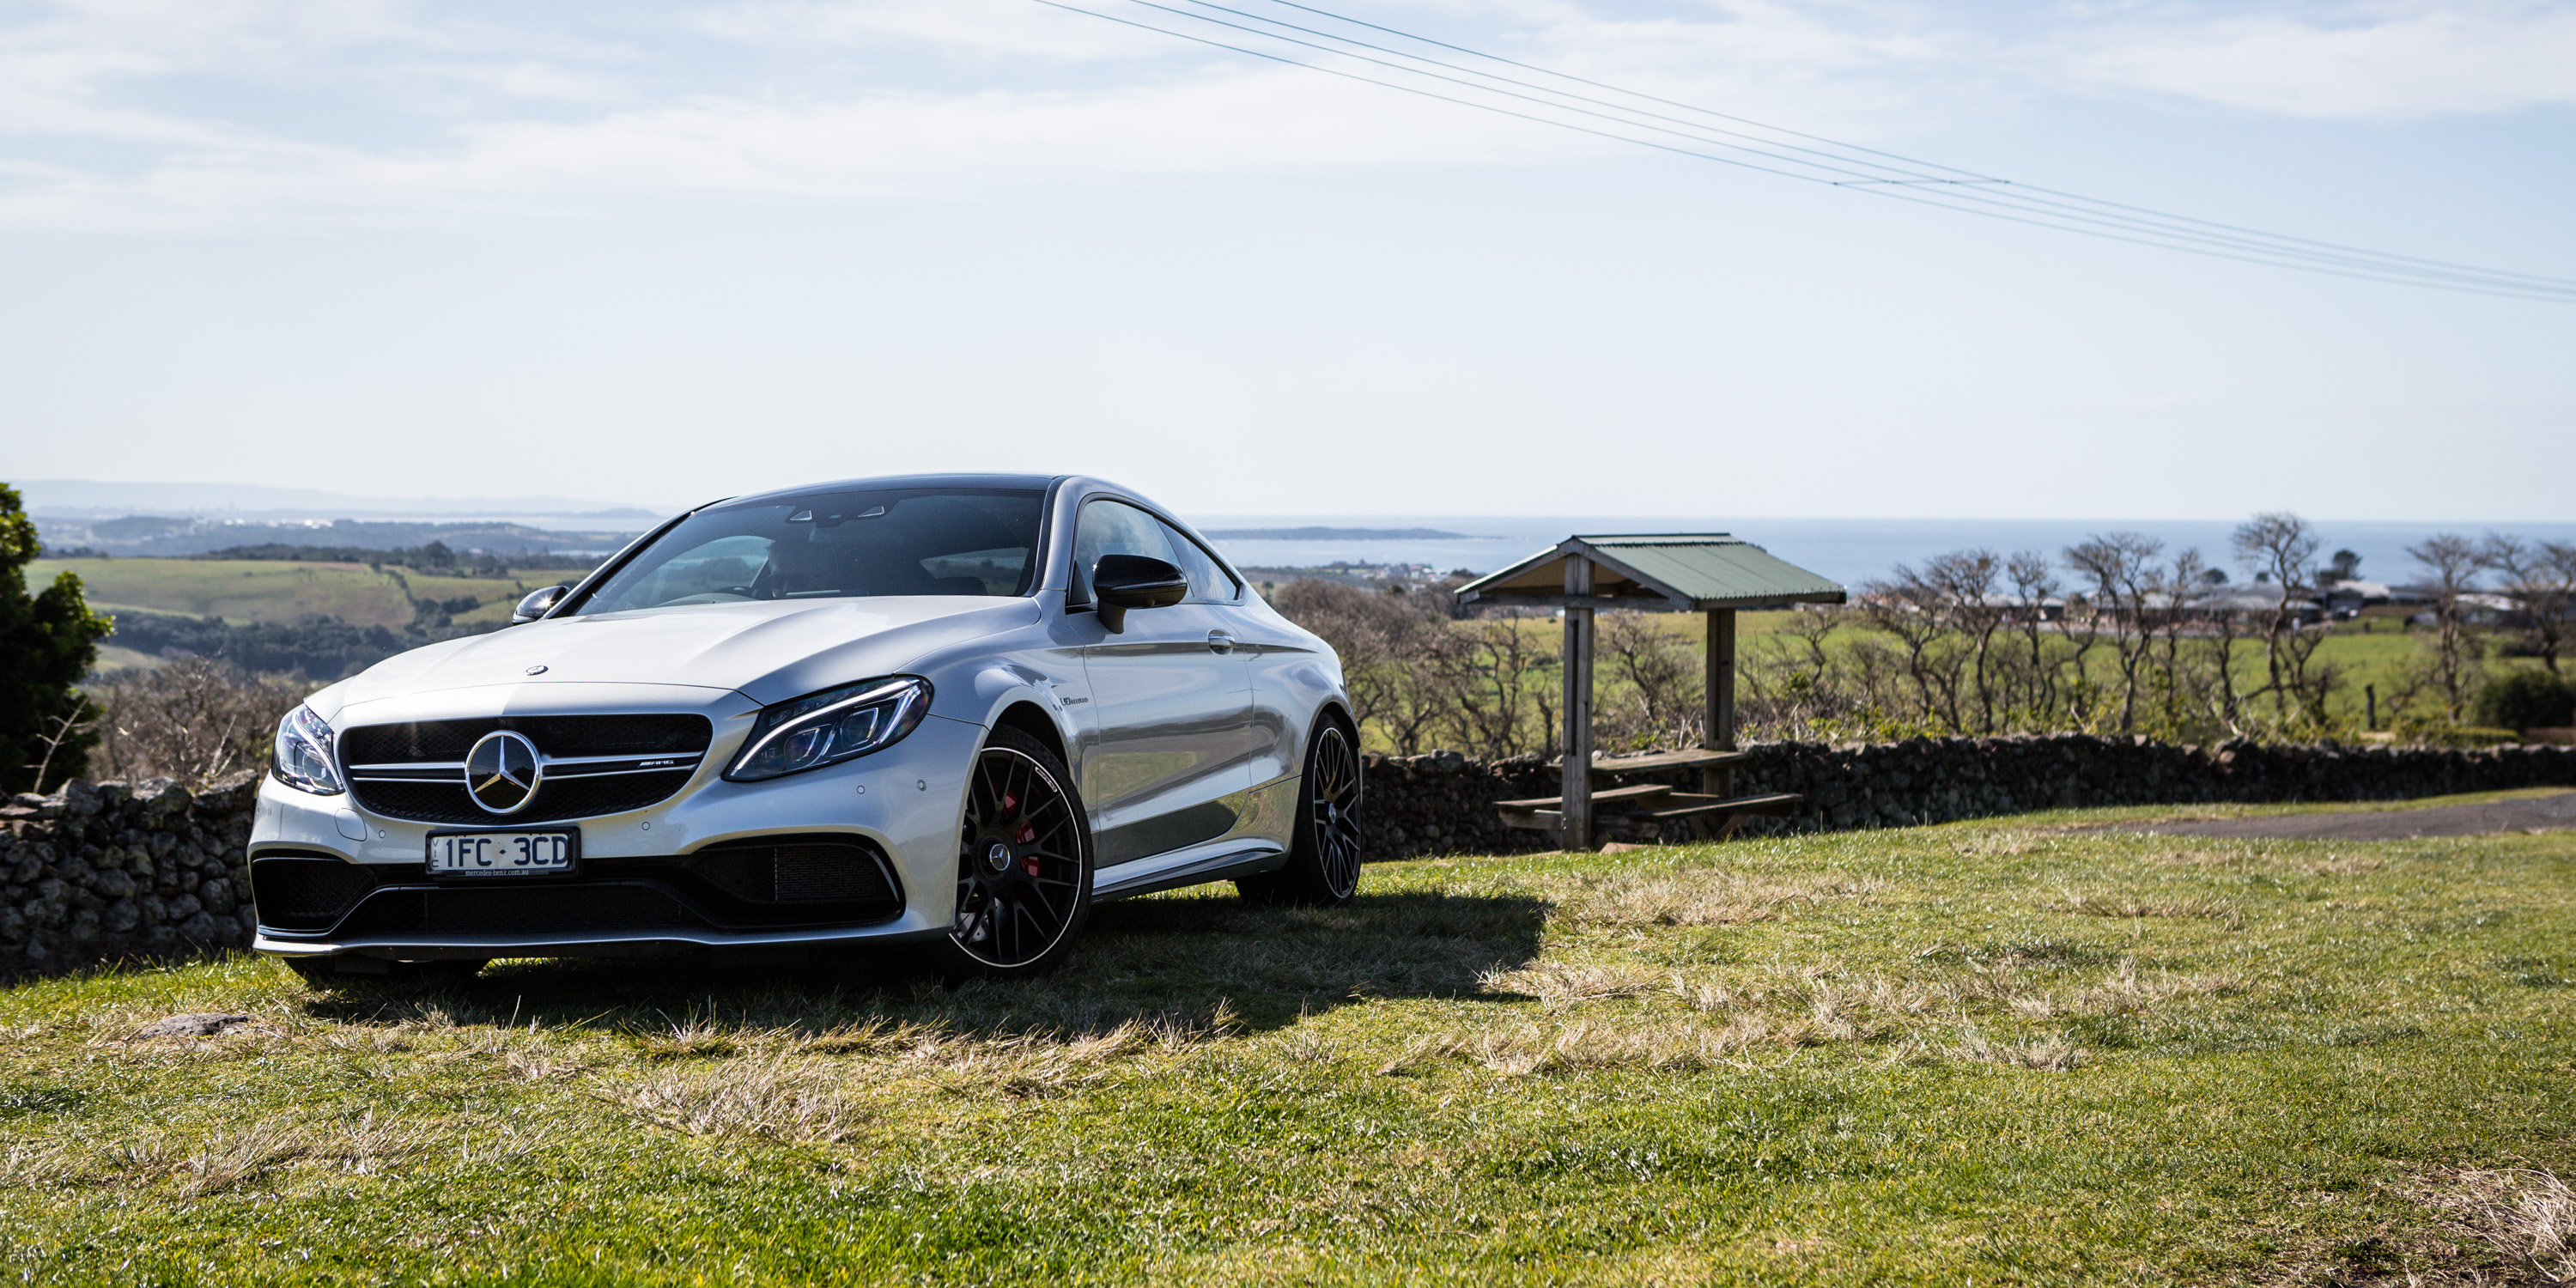 2017 mercedes amg c63 s coupe review caradvice for 08 mercedes benz